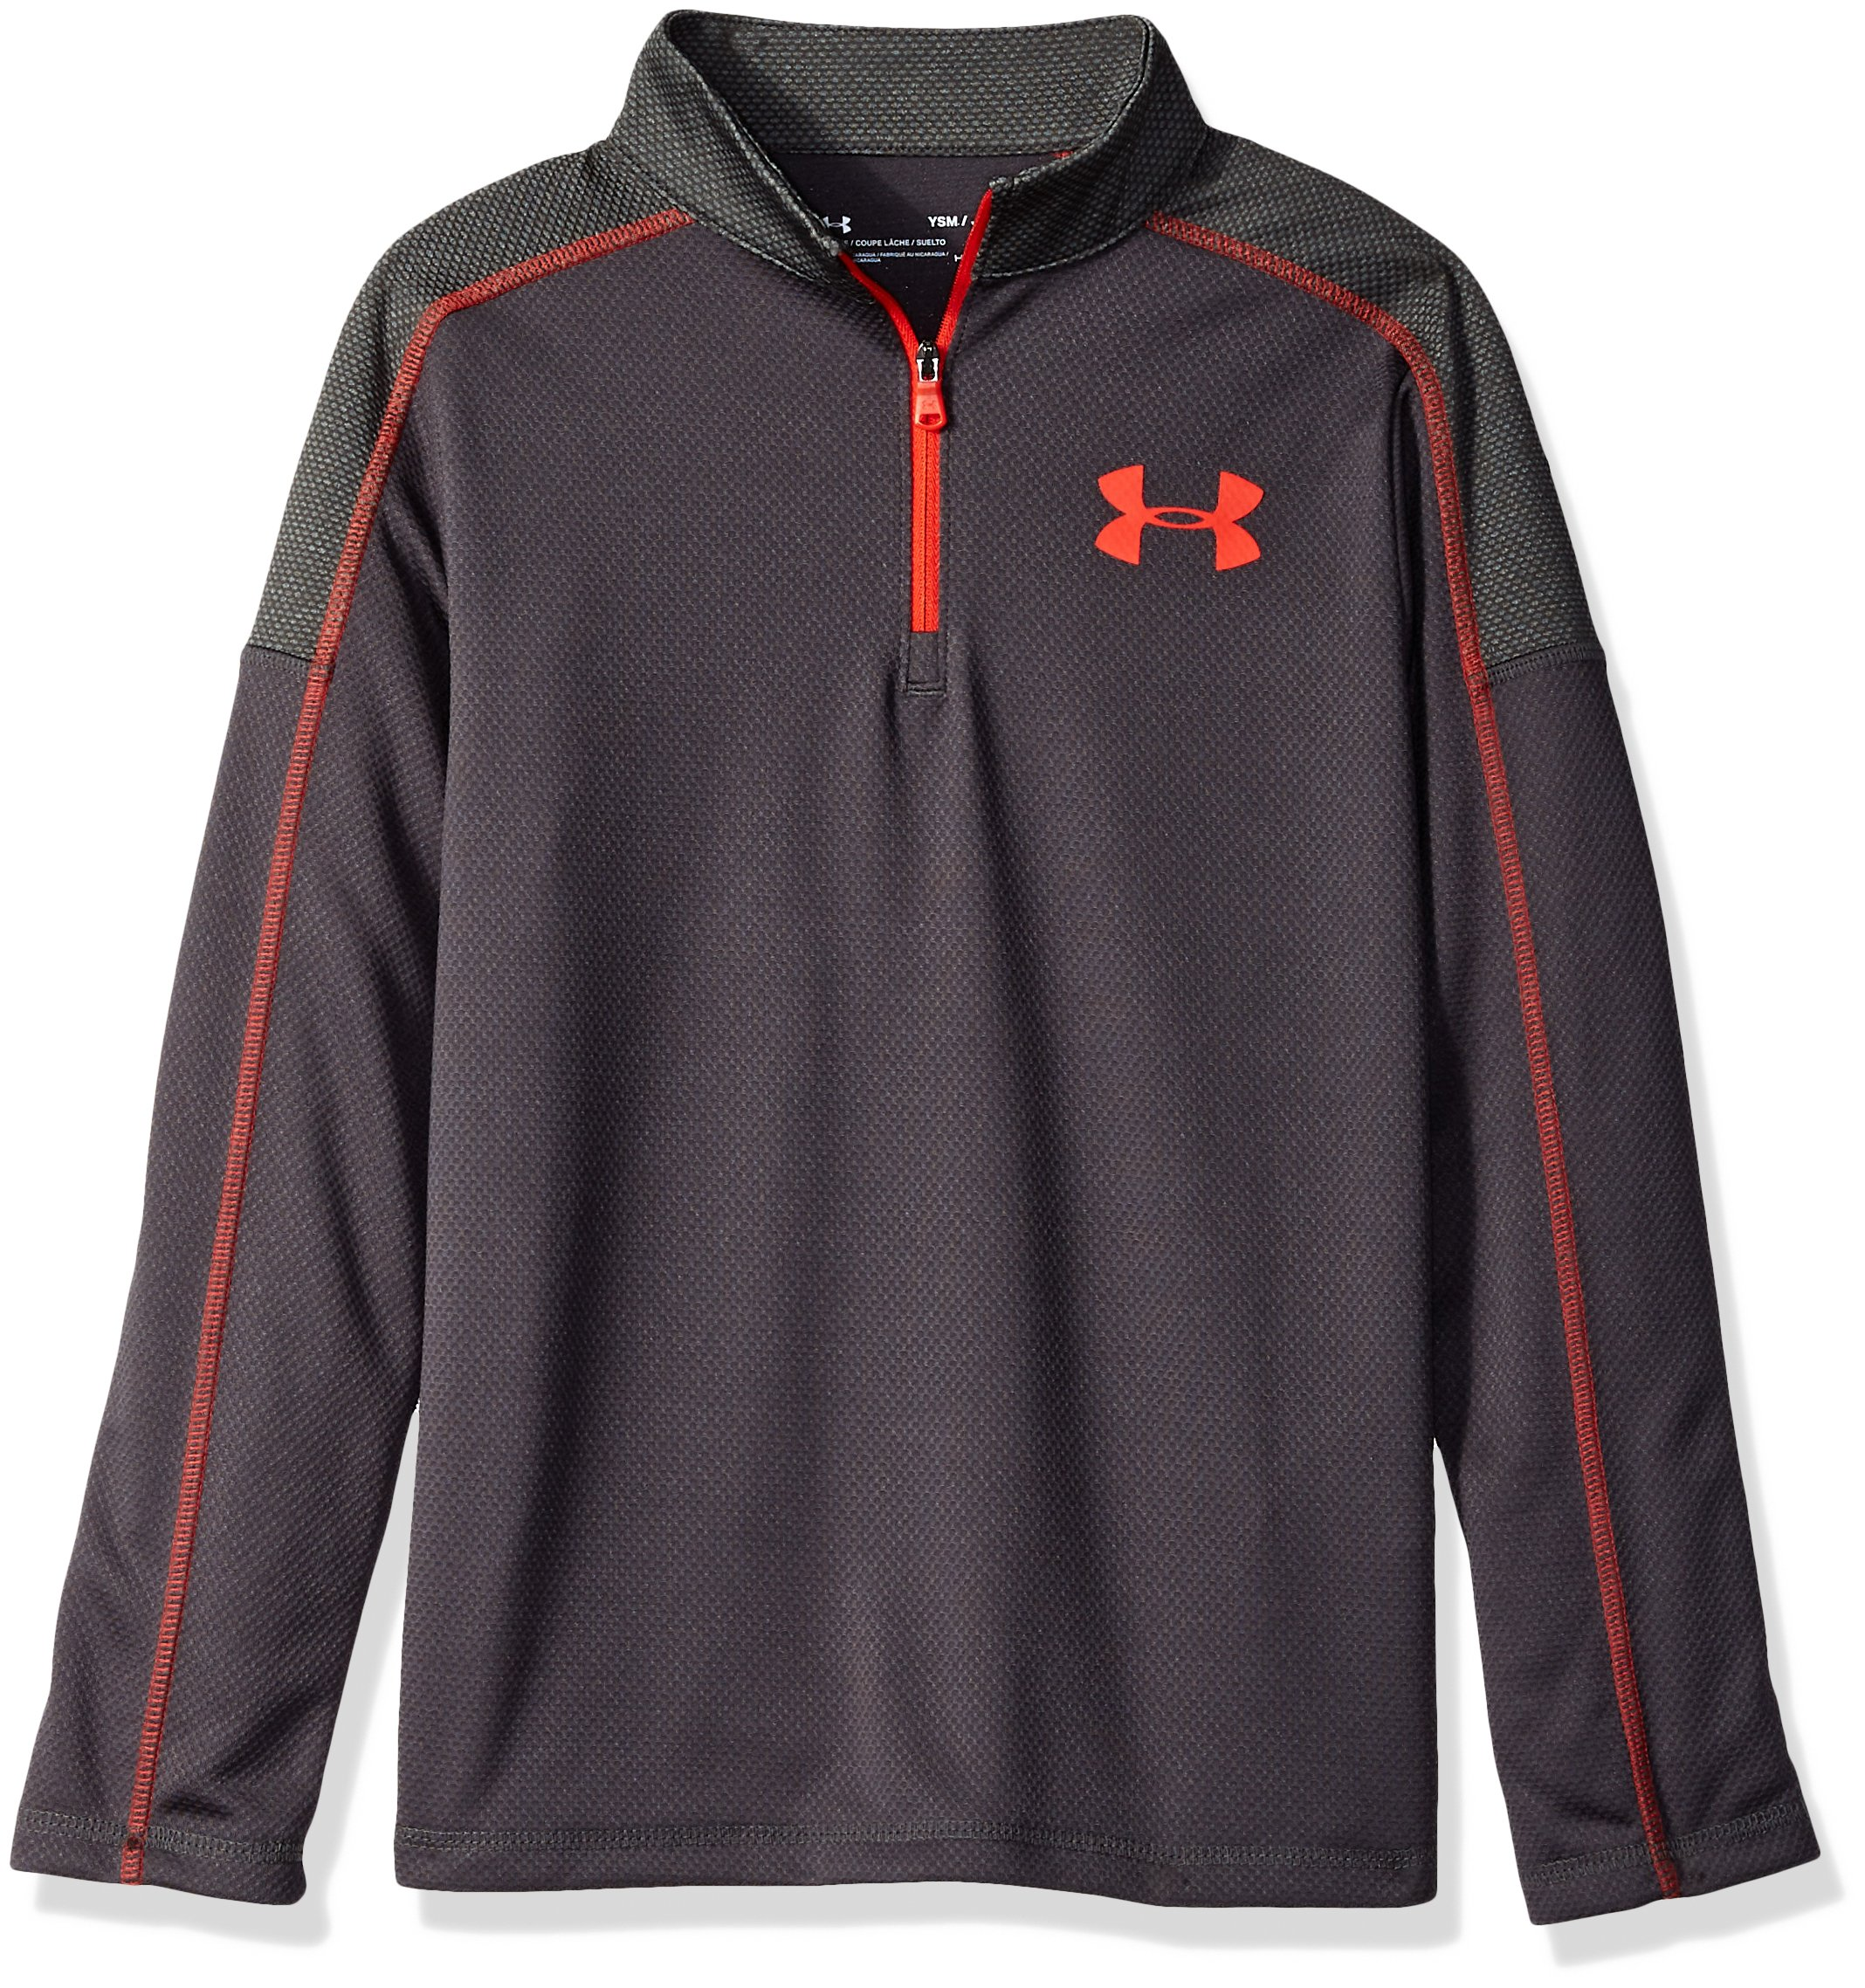 Under Armour Boys Tech 1/2 Zip, Charcoal (019)/Radio Red, Youth Medium